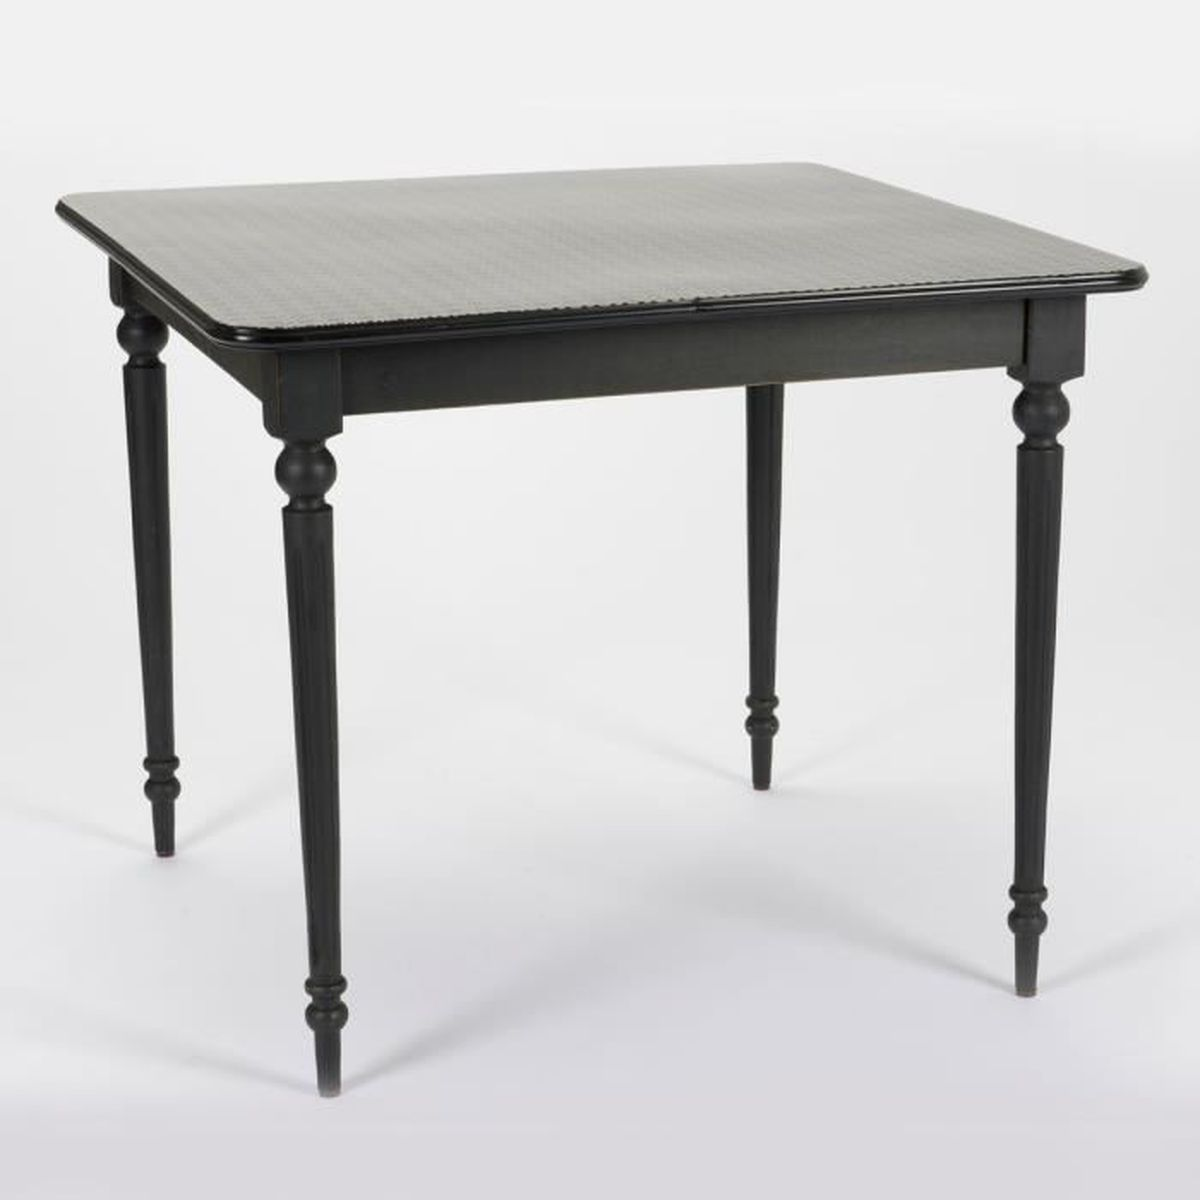 Table manger carr e bistro noir achat vente table for Table a manger noir